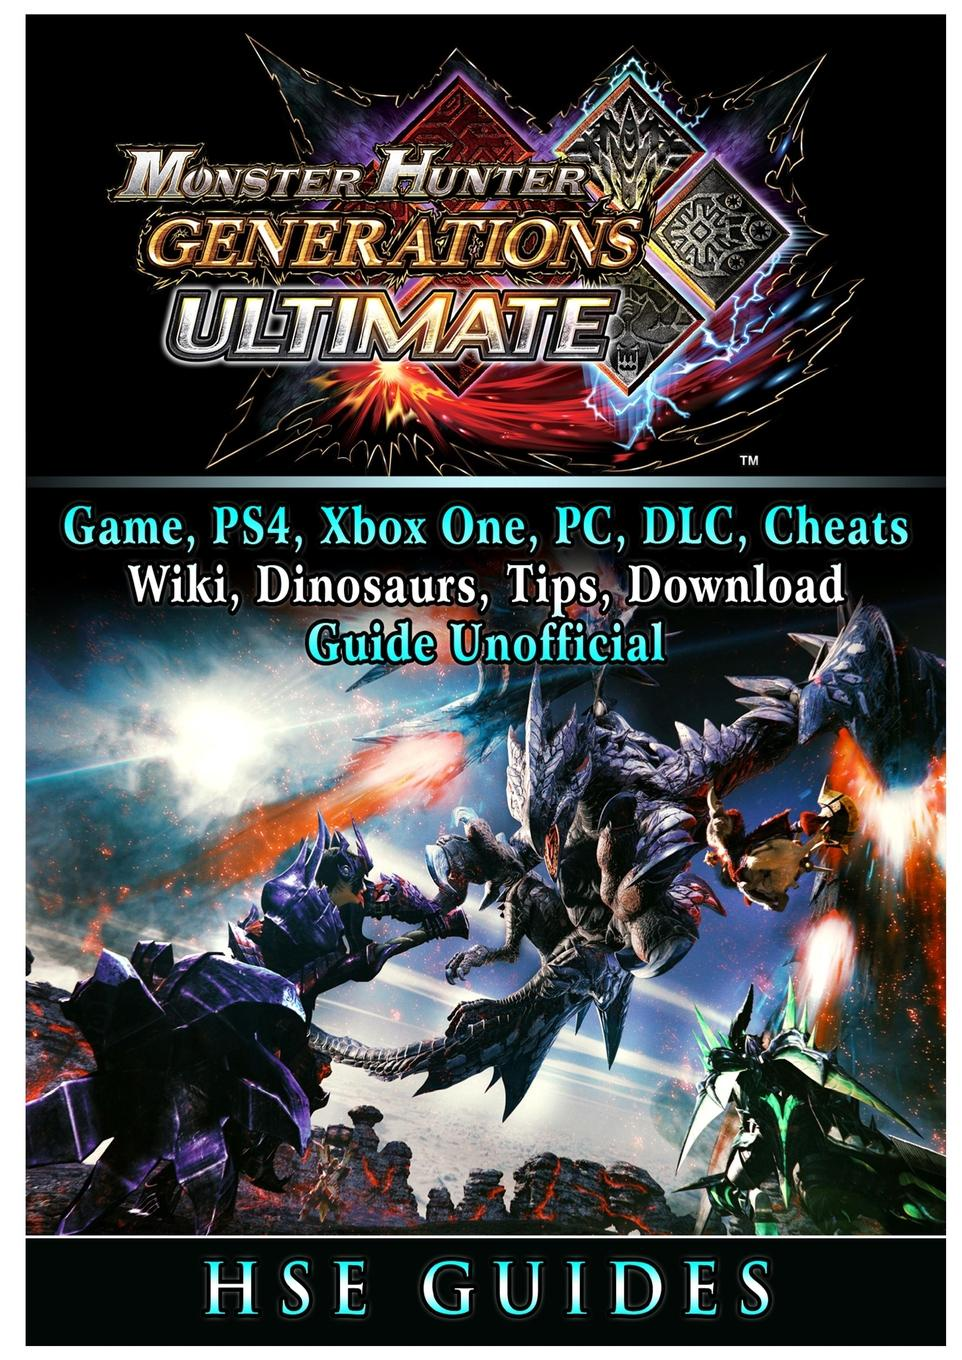 Hse Guides Monster Hunter Generations Ultimate, Game, Wiki, Monster List, Weapons, Alchemy, Tips, Cheats, Guide Unofficial jim hornickel negotiating success tips and tools for building rapport and dissolving conflict while still getting what you want